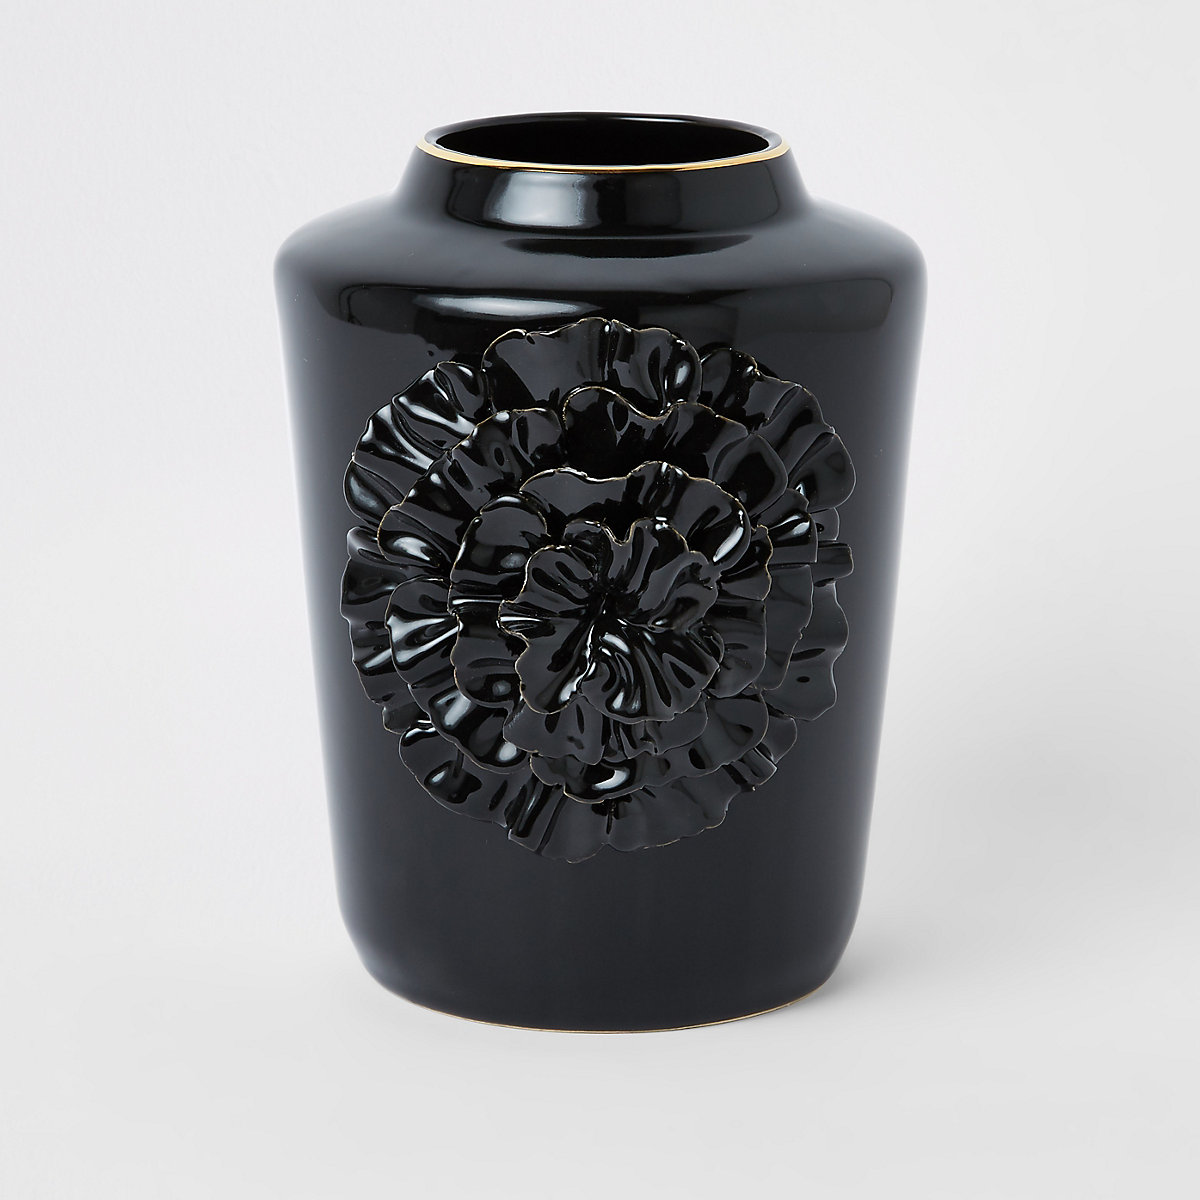 Black ceramic flower vase